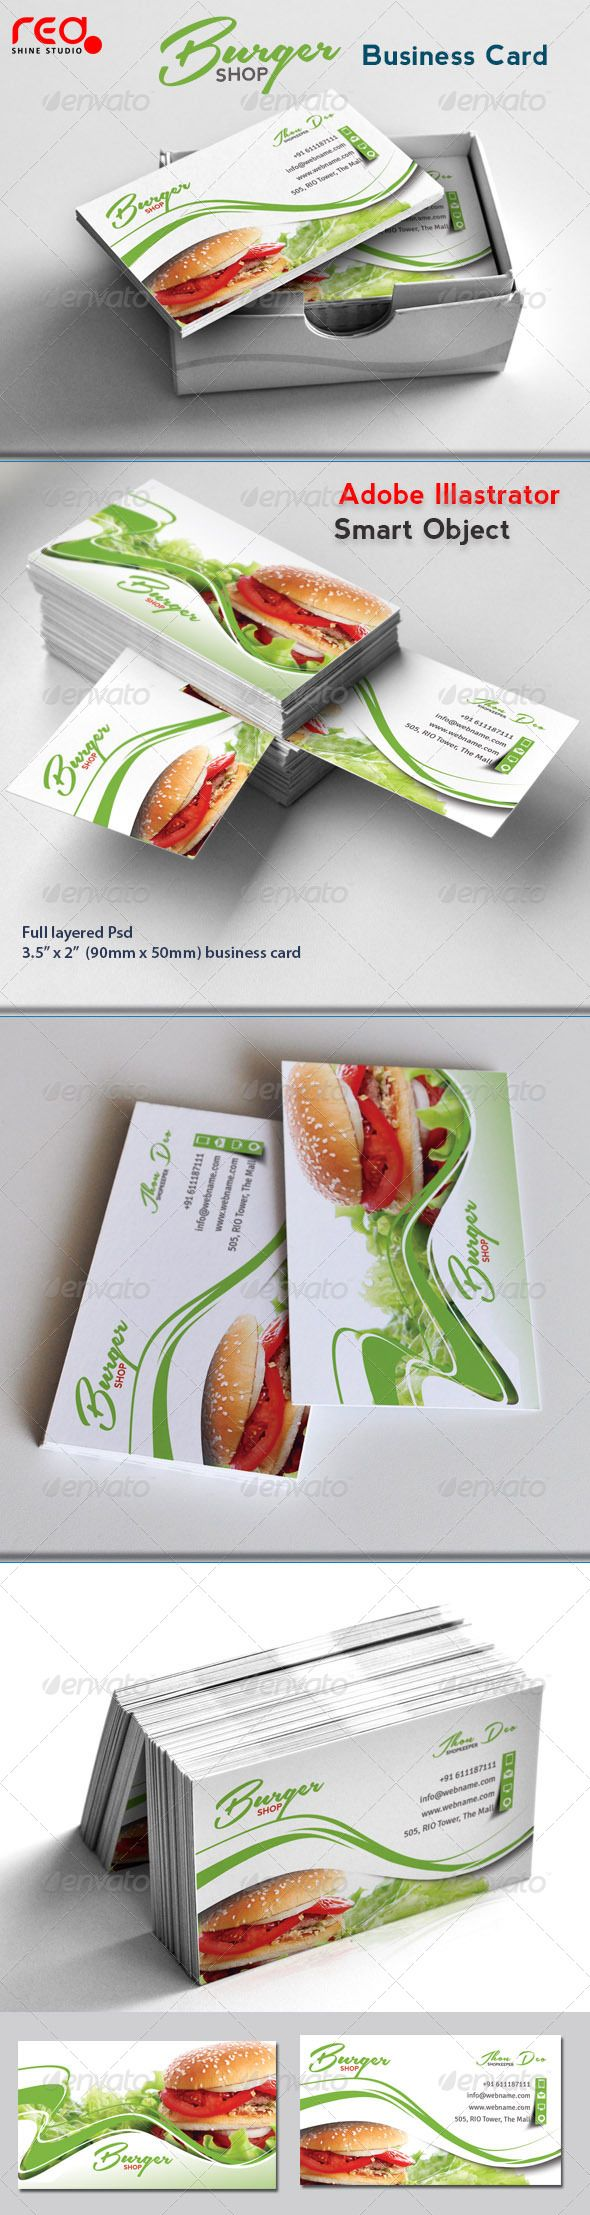 66 best BUsiness card and Logos!! images on Pinterest | Lipsense ...